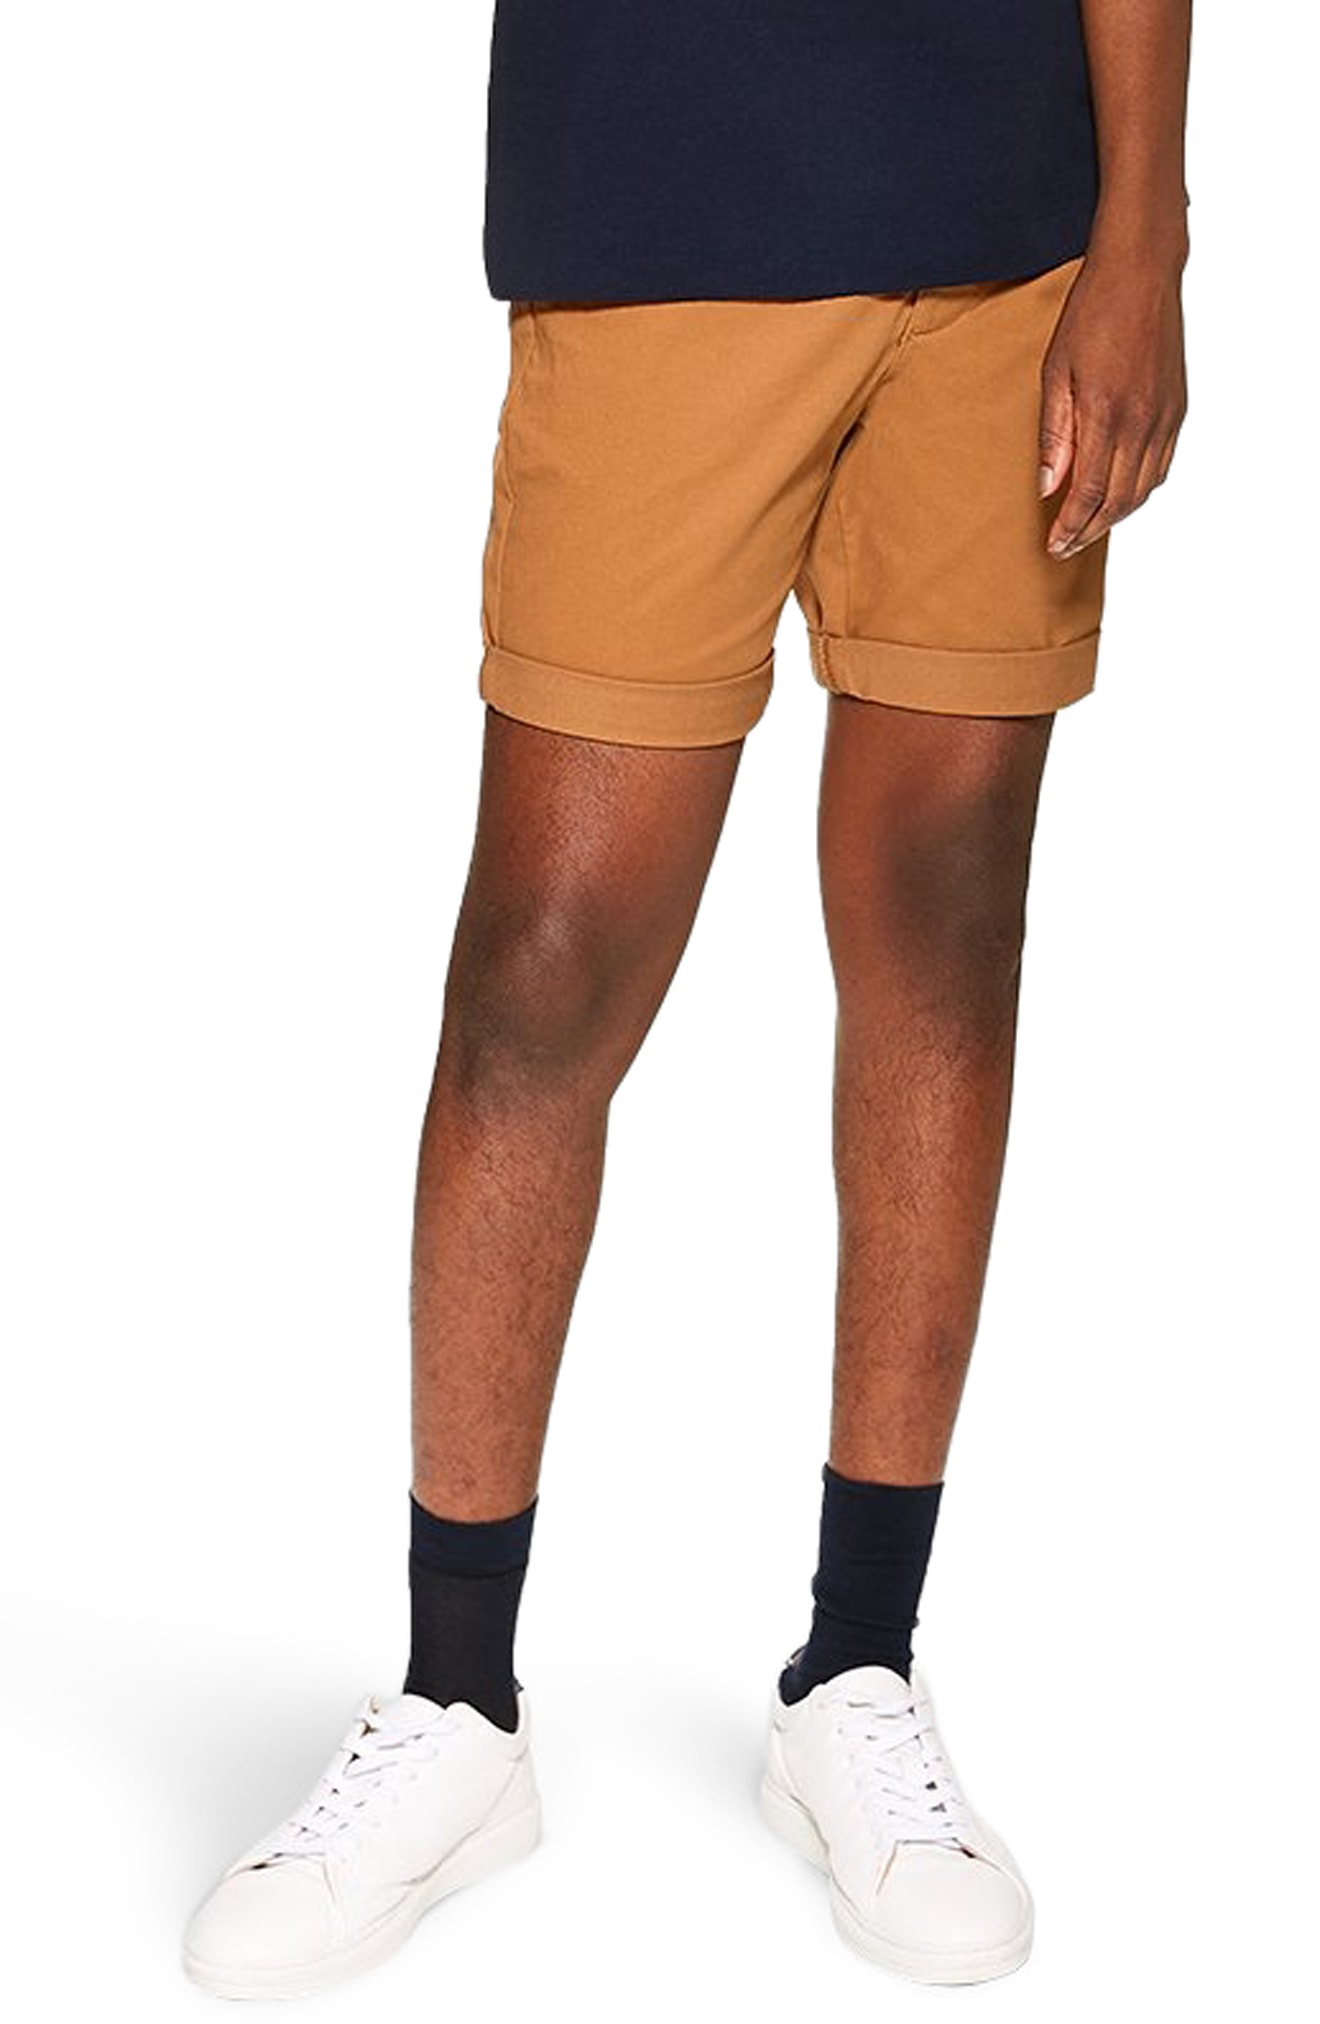 76f9dc8fbca58 Topman Skinny Fit Chino Shorts In Navy Blue